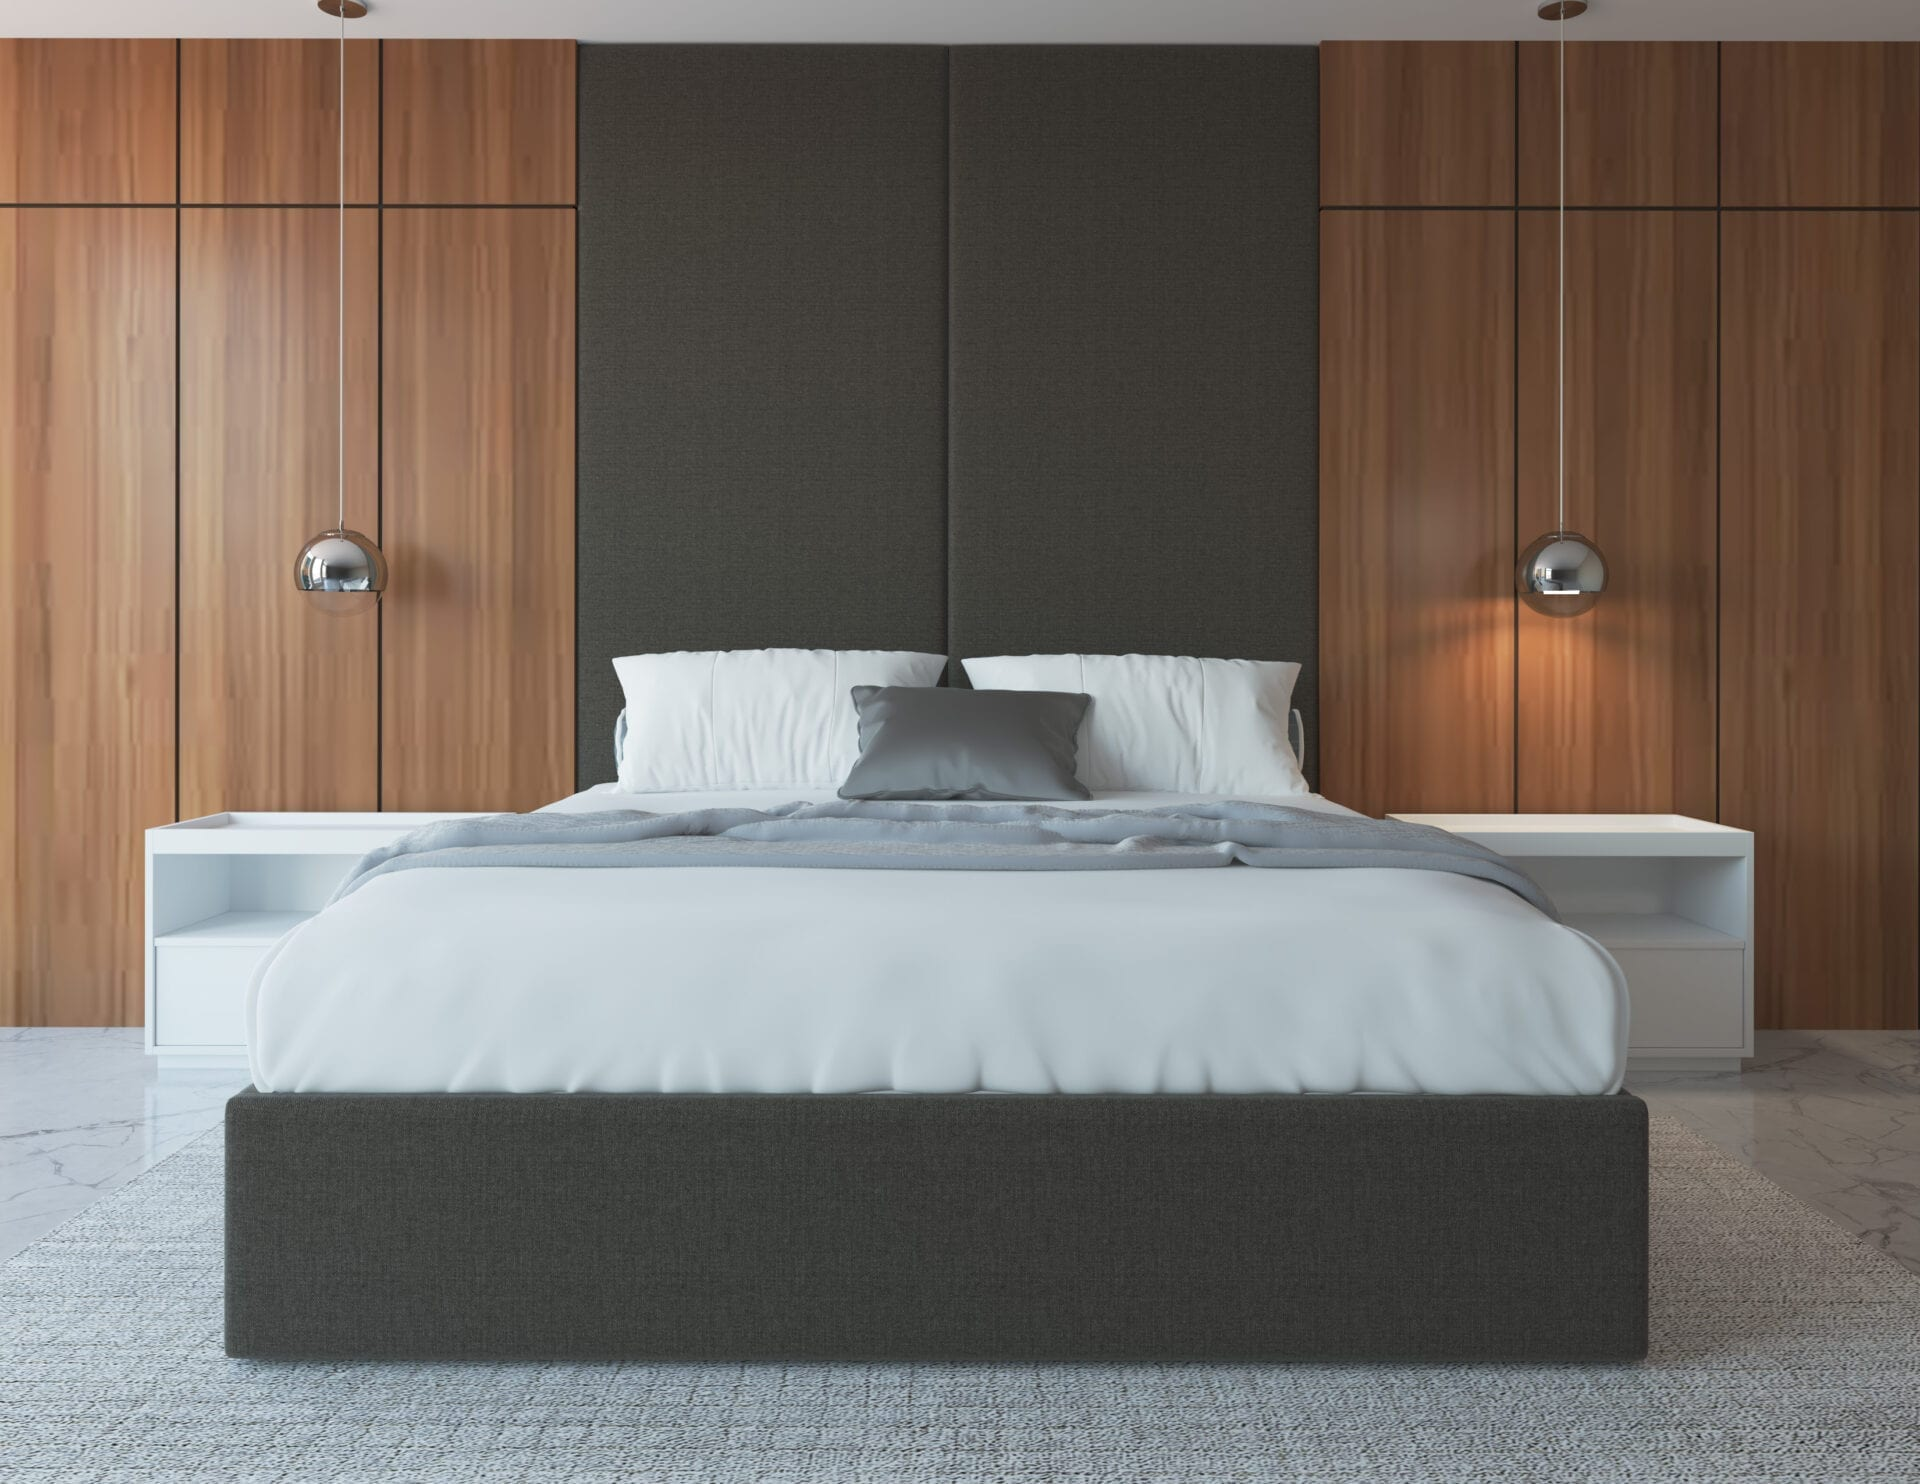 custom upholstered bed and mounted headboard